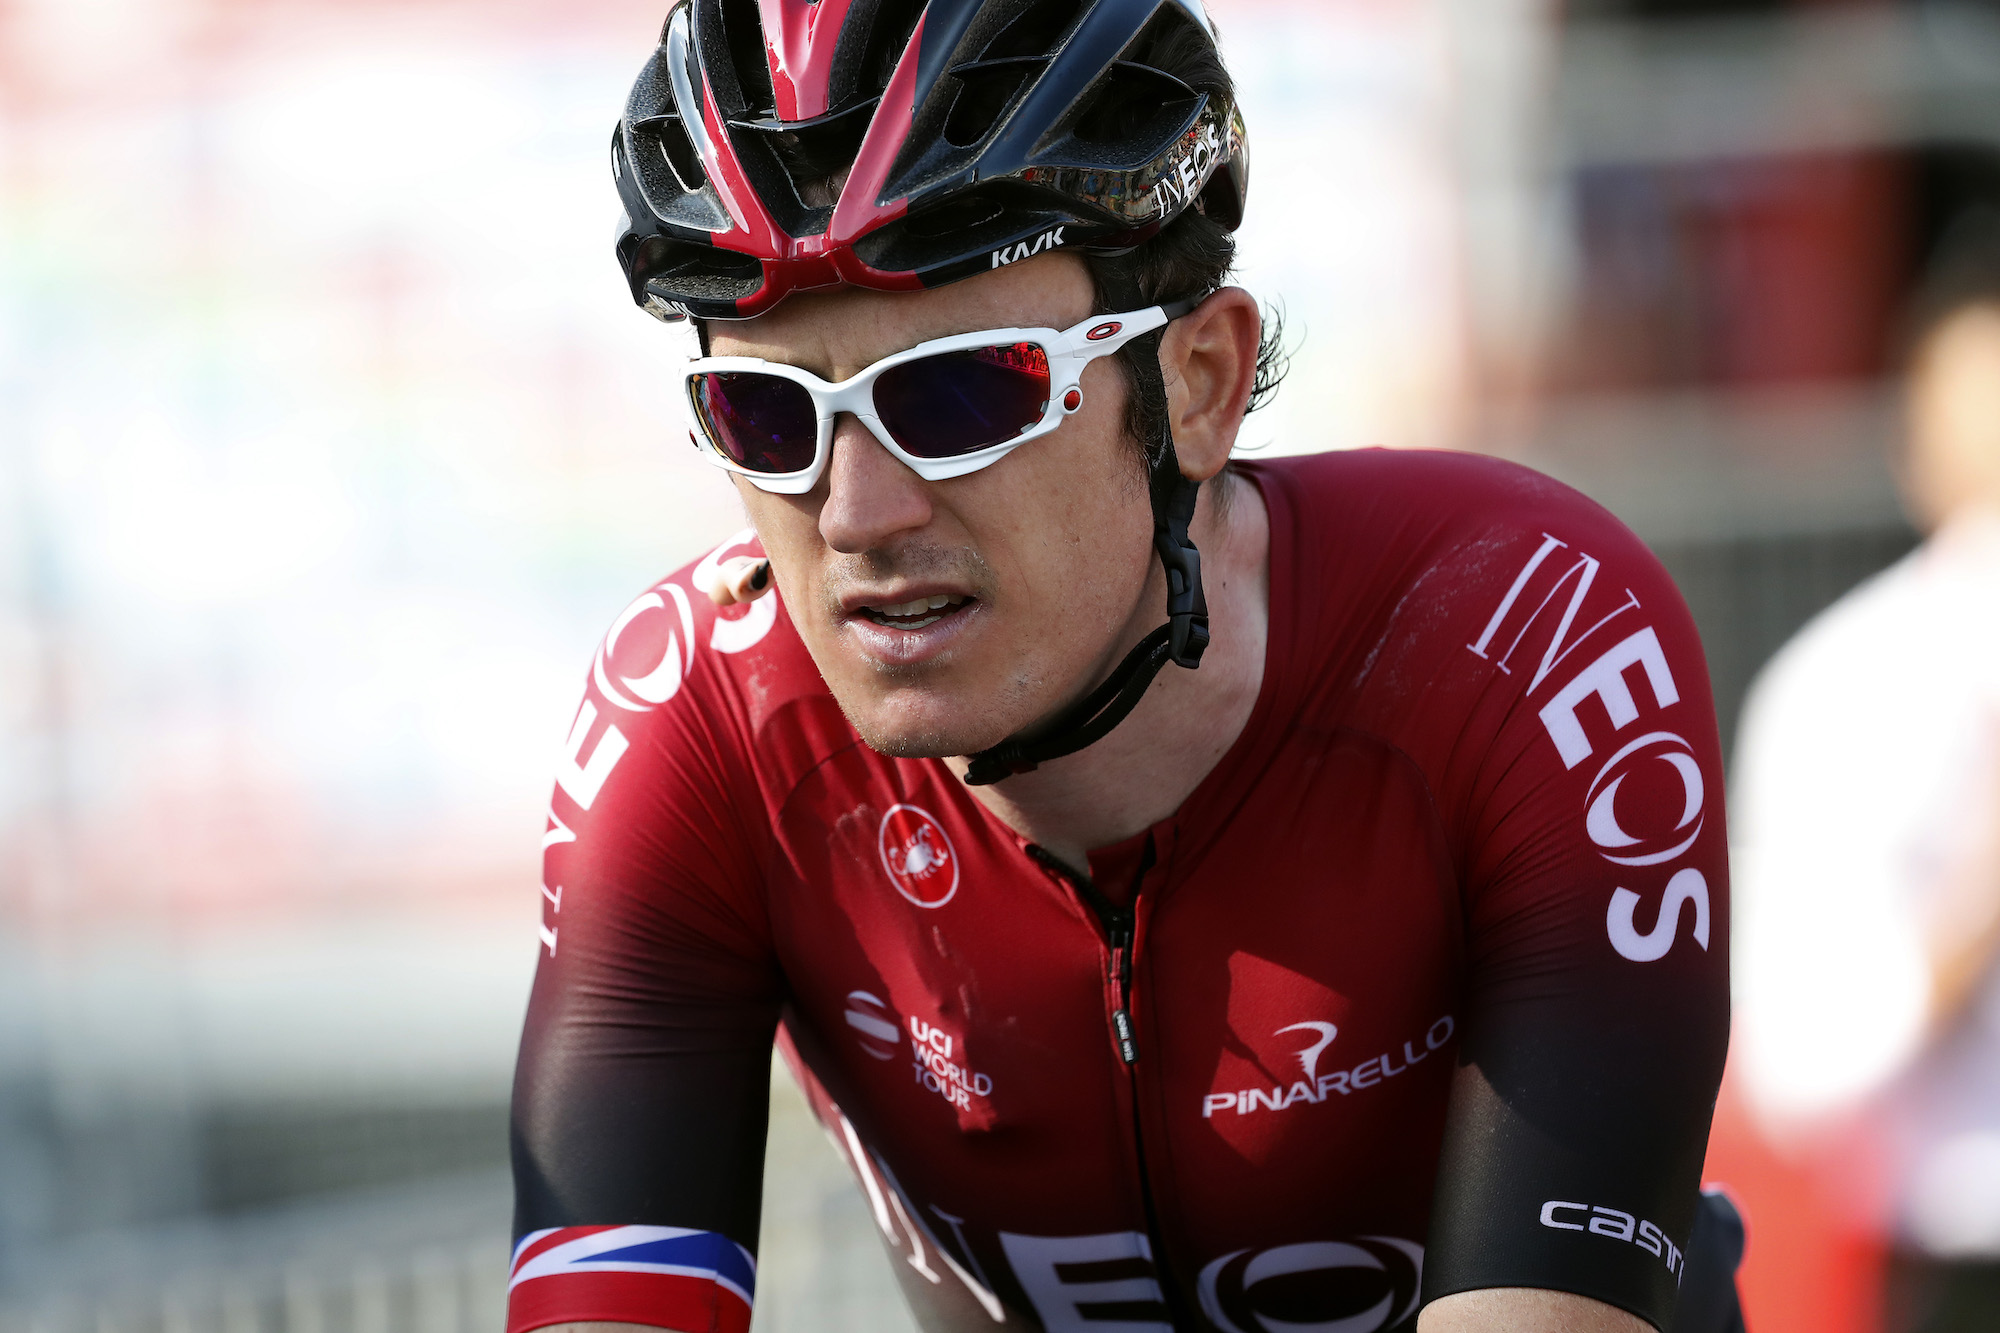 Geraint Thomas pulls out of Road World Championships time trial